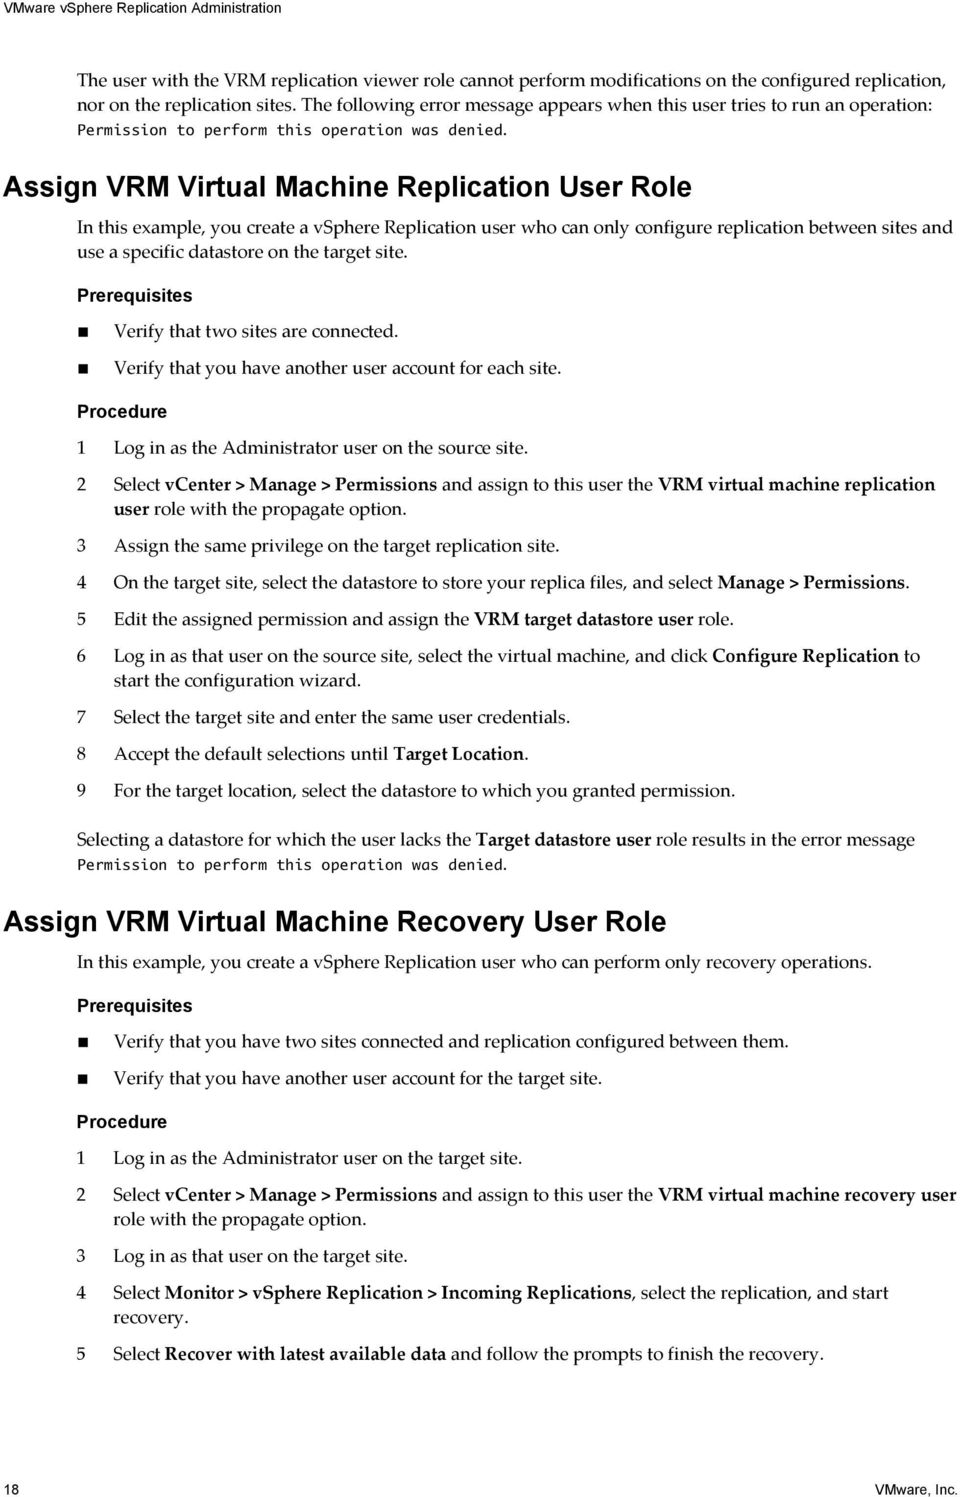 Assign VRM Virtual Machine Replication User Role In this example, you create a vsphere Replication user who can only configure replication between sites and use a specific datastore on the target